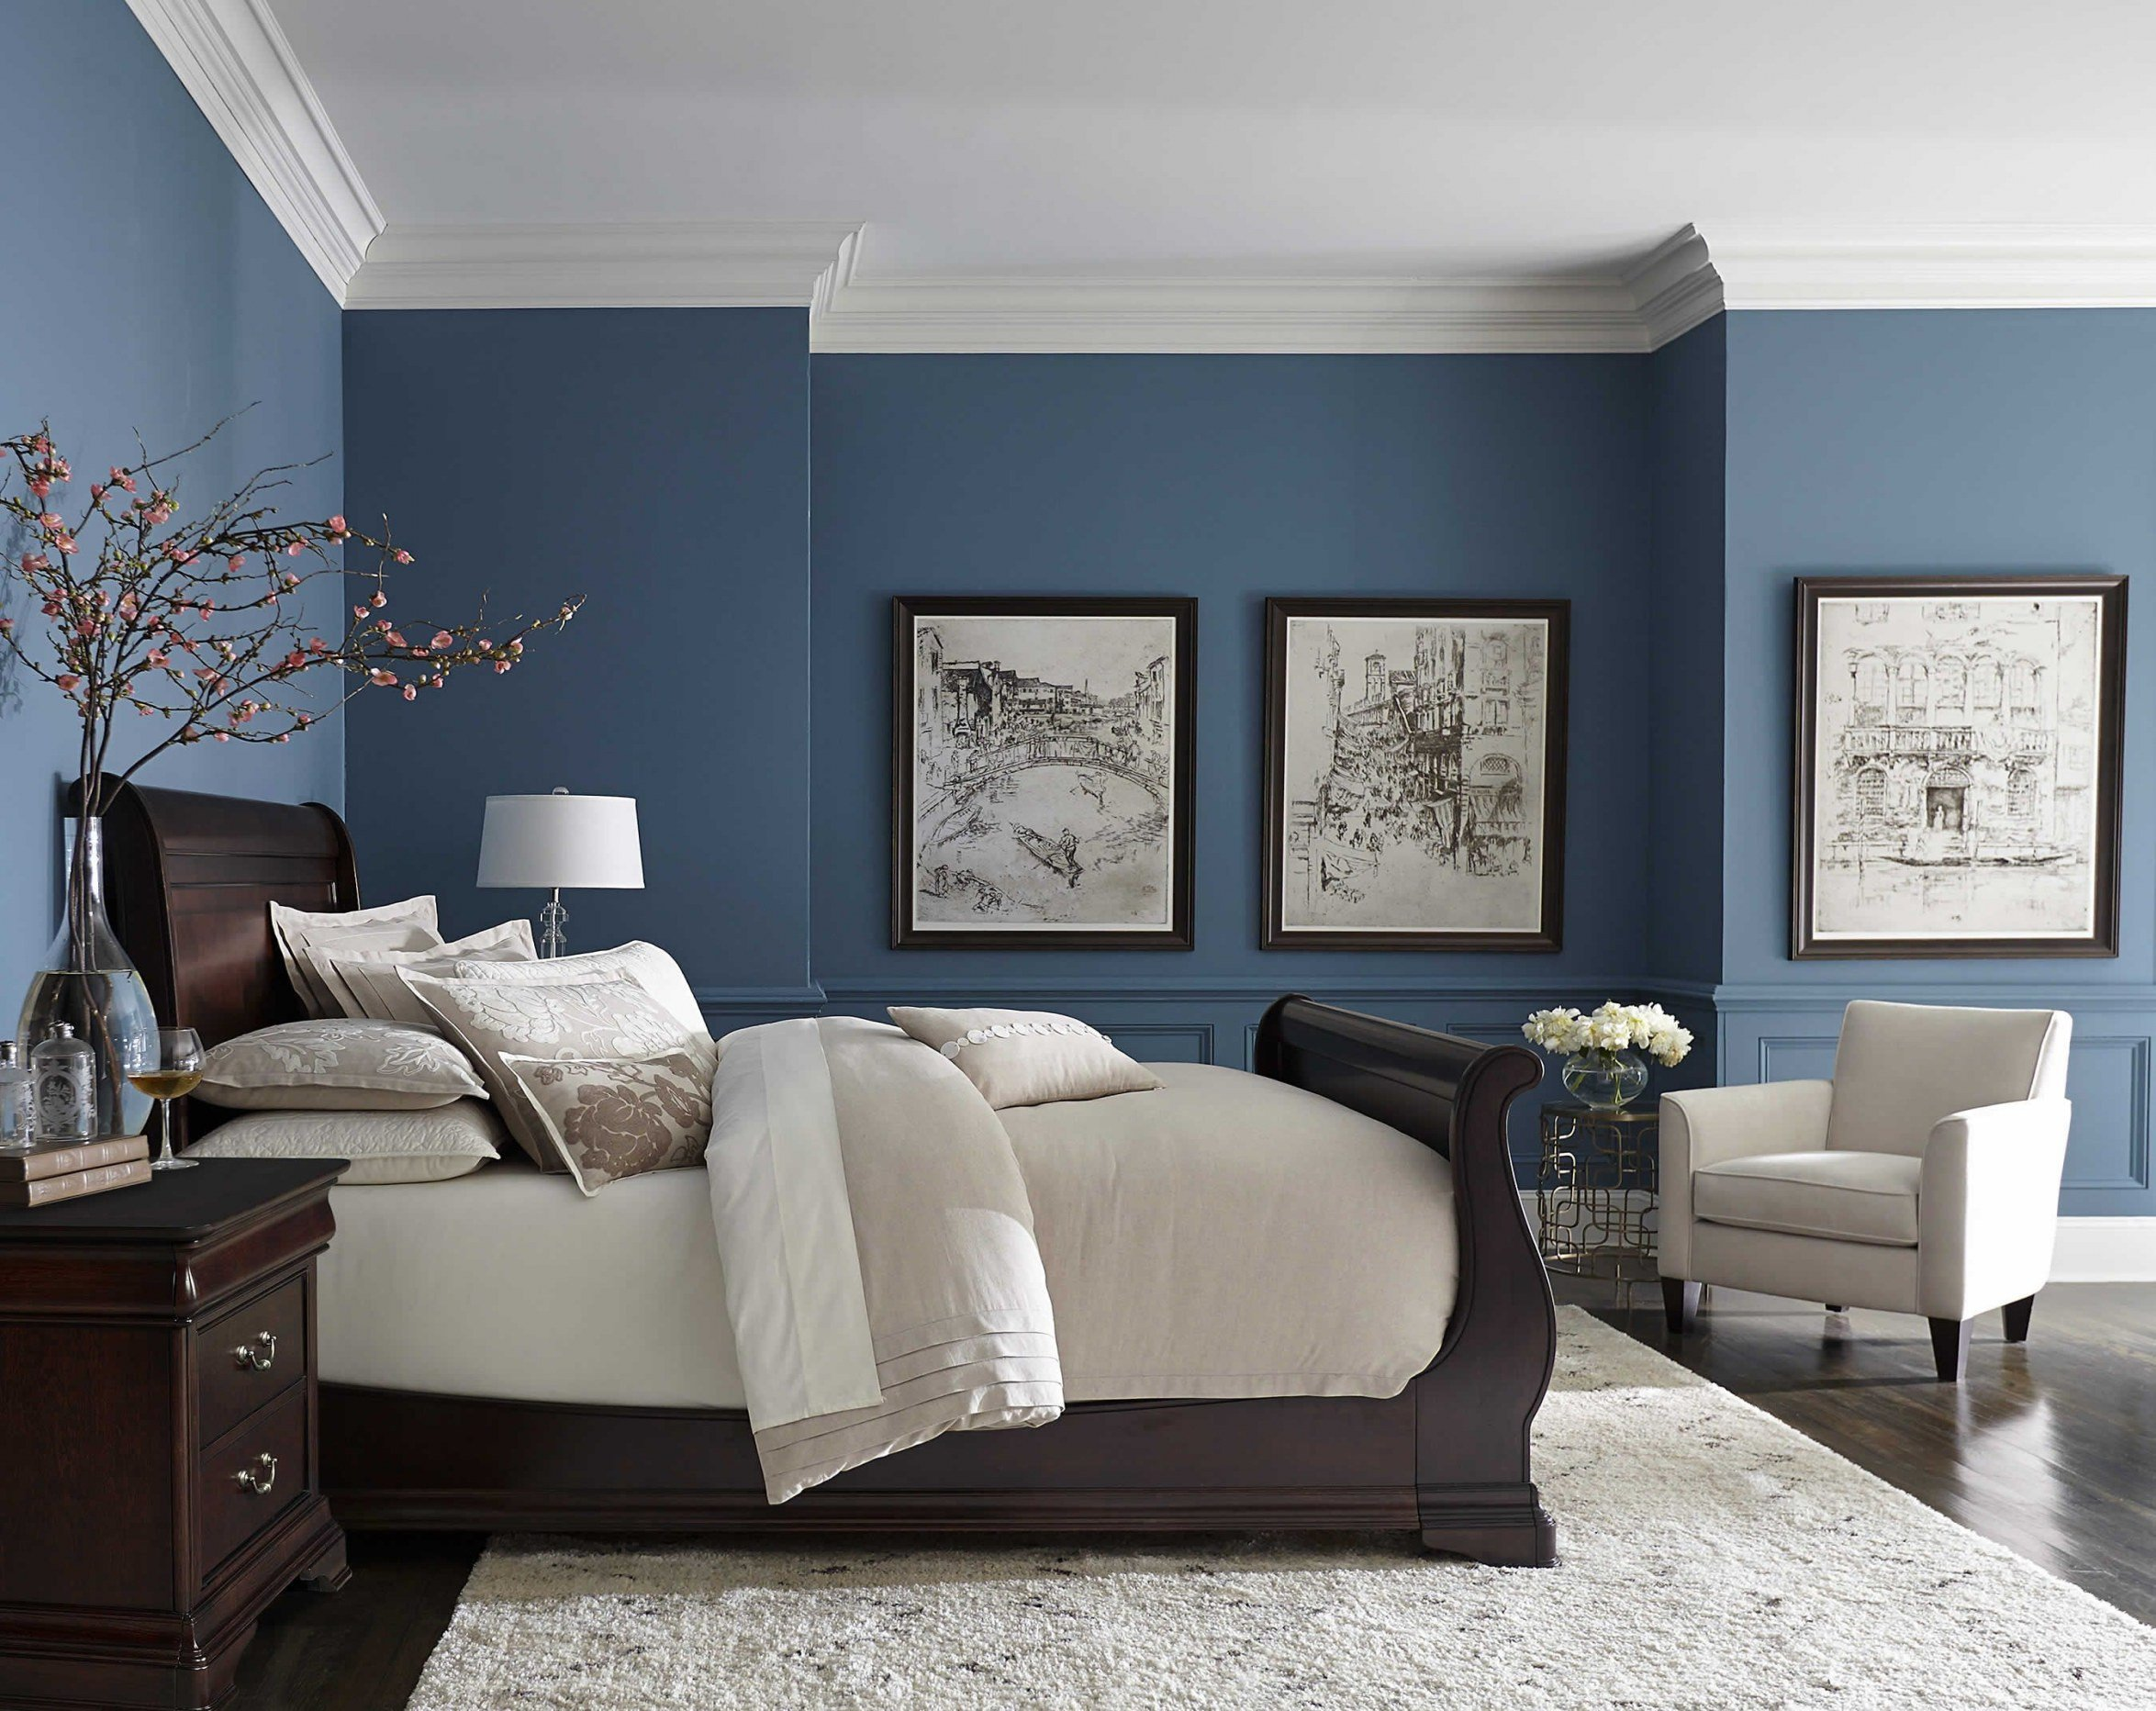 Blue and Gray Bedroom Awesome Neutral Bedroom Ideas attractive Design Ideas Gray Blue